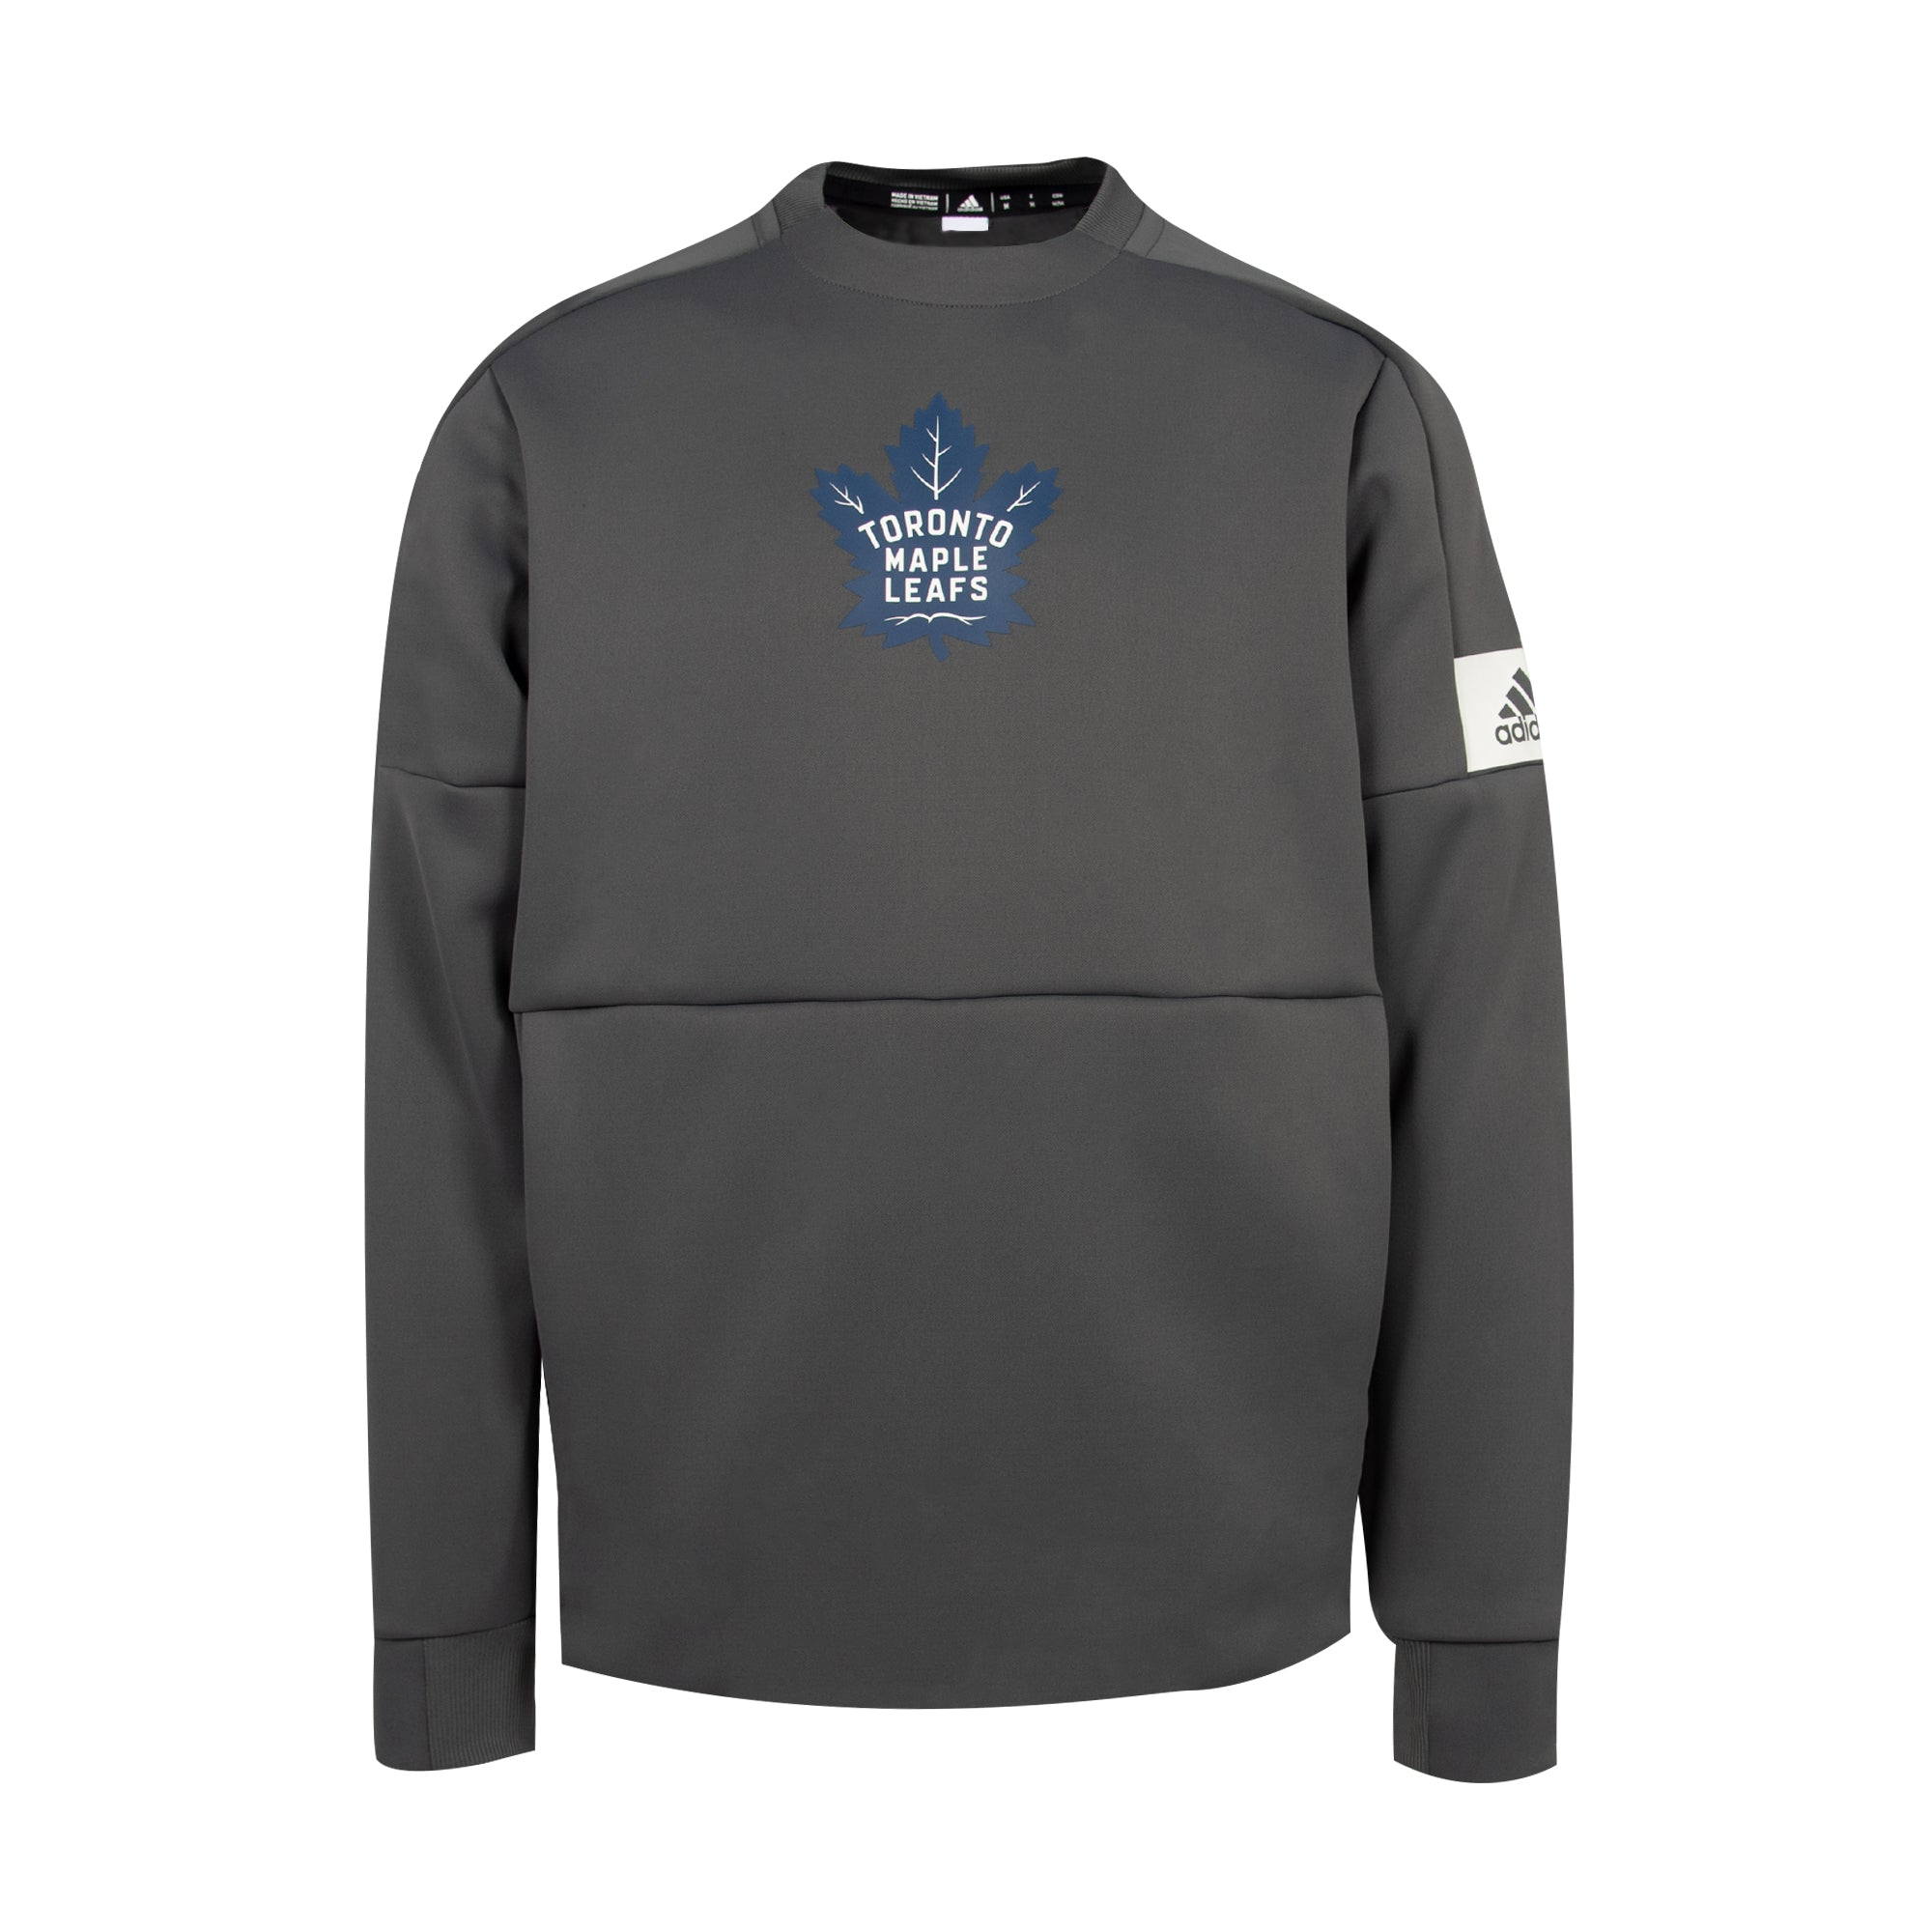 Maple Leafs Adidas Men's Sports Game Mode Crew Sweater